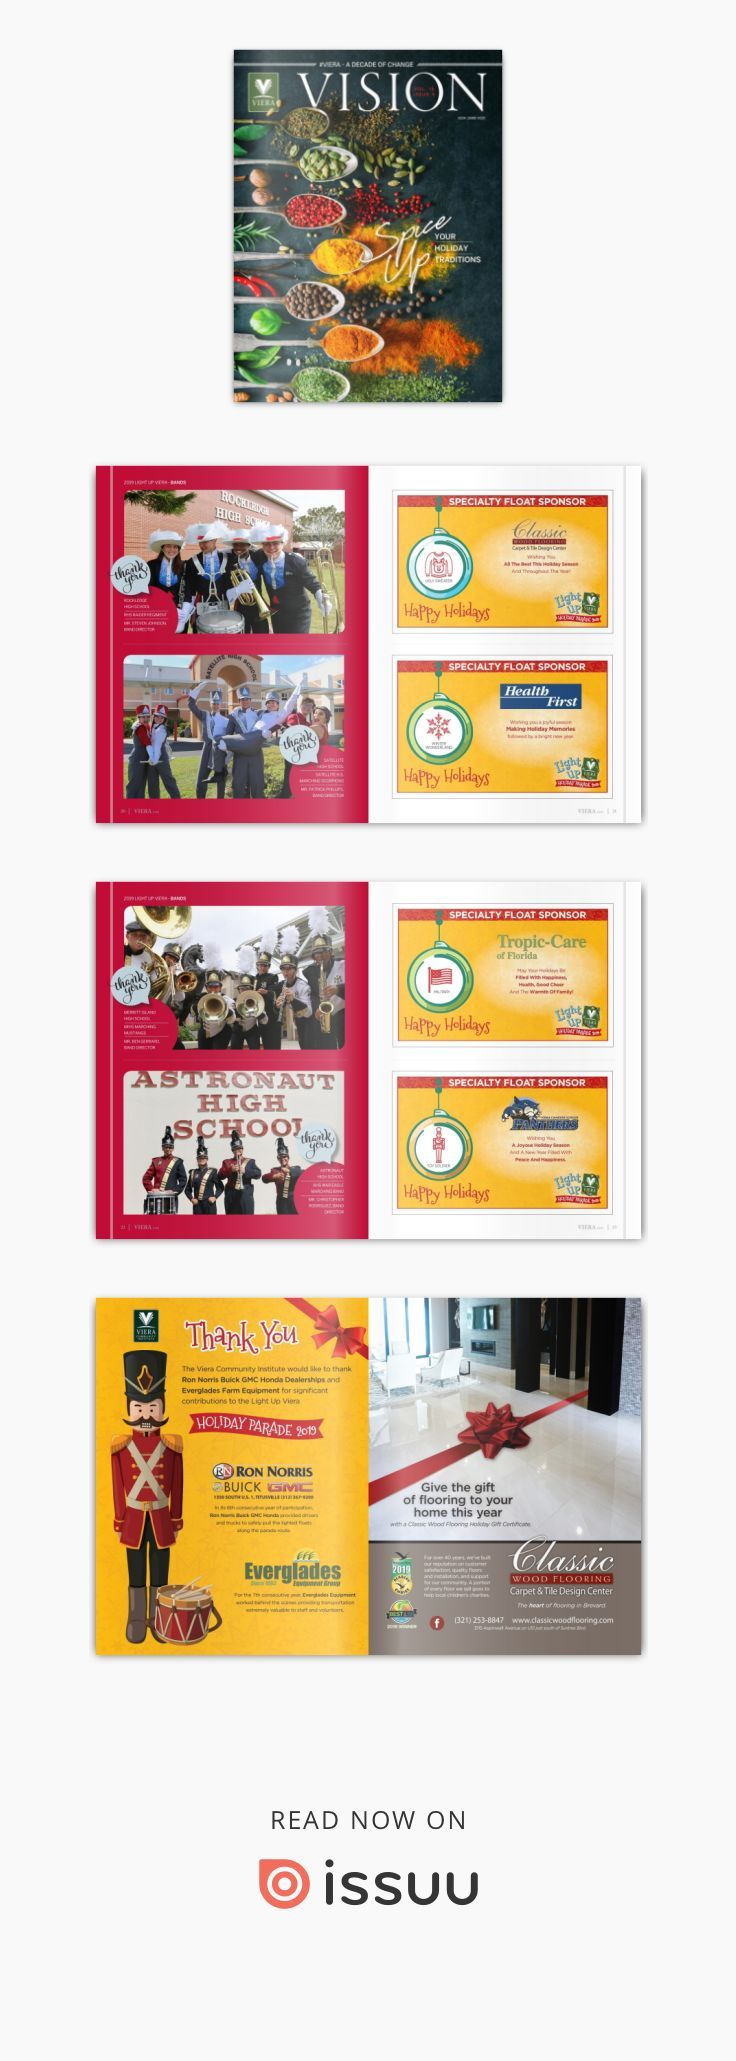 Viera Vision Volume 15, Issue 4  The Viera community celebrated its 30th year anniversary this year and we start this issue with The Decade of Change in #Viera. We added new schools, stores, restaurants, businesses, roads, homes, neighborhoods, and several thousand new residents between 2010 and 2019. The community continues to grow and change in exciting new ways. The last issue of the year highlights the upcoming details of the Light Up Viera holiday parade including parade routes, marching ba